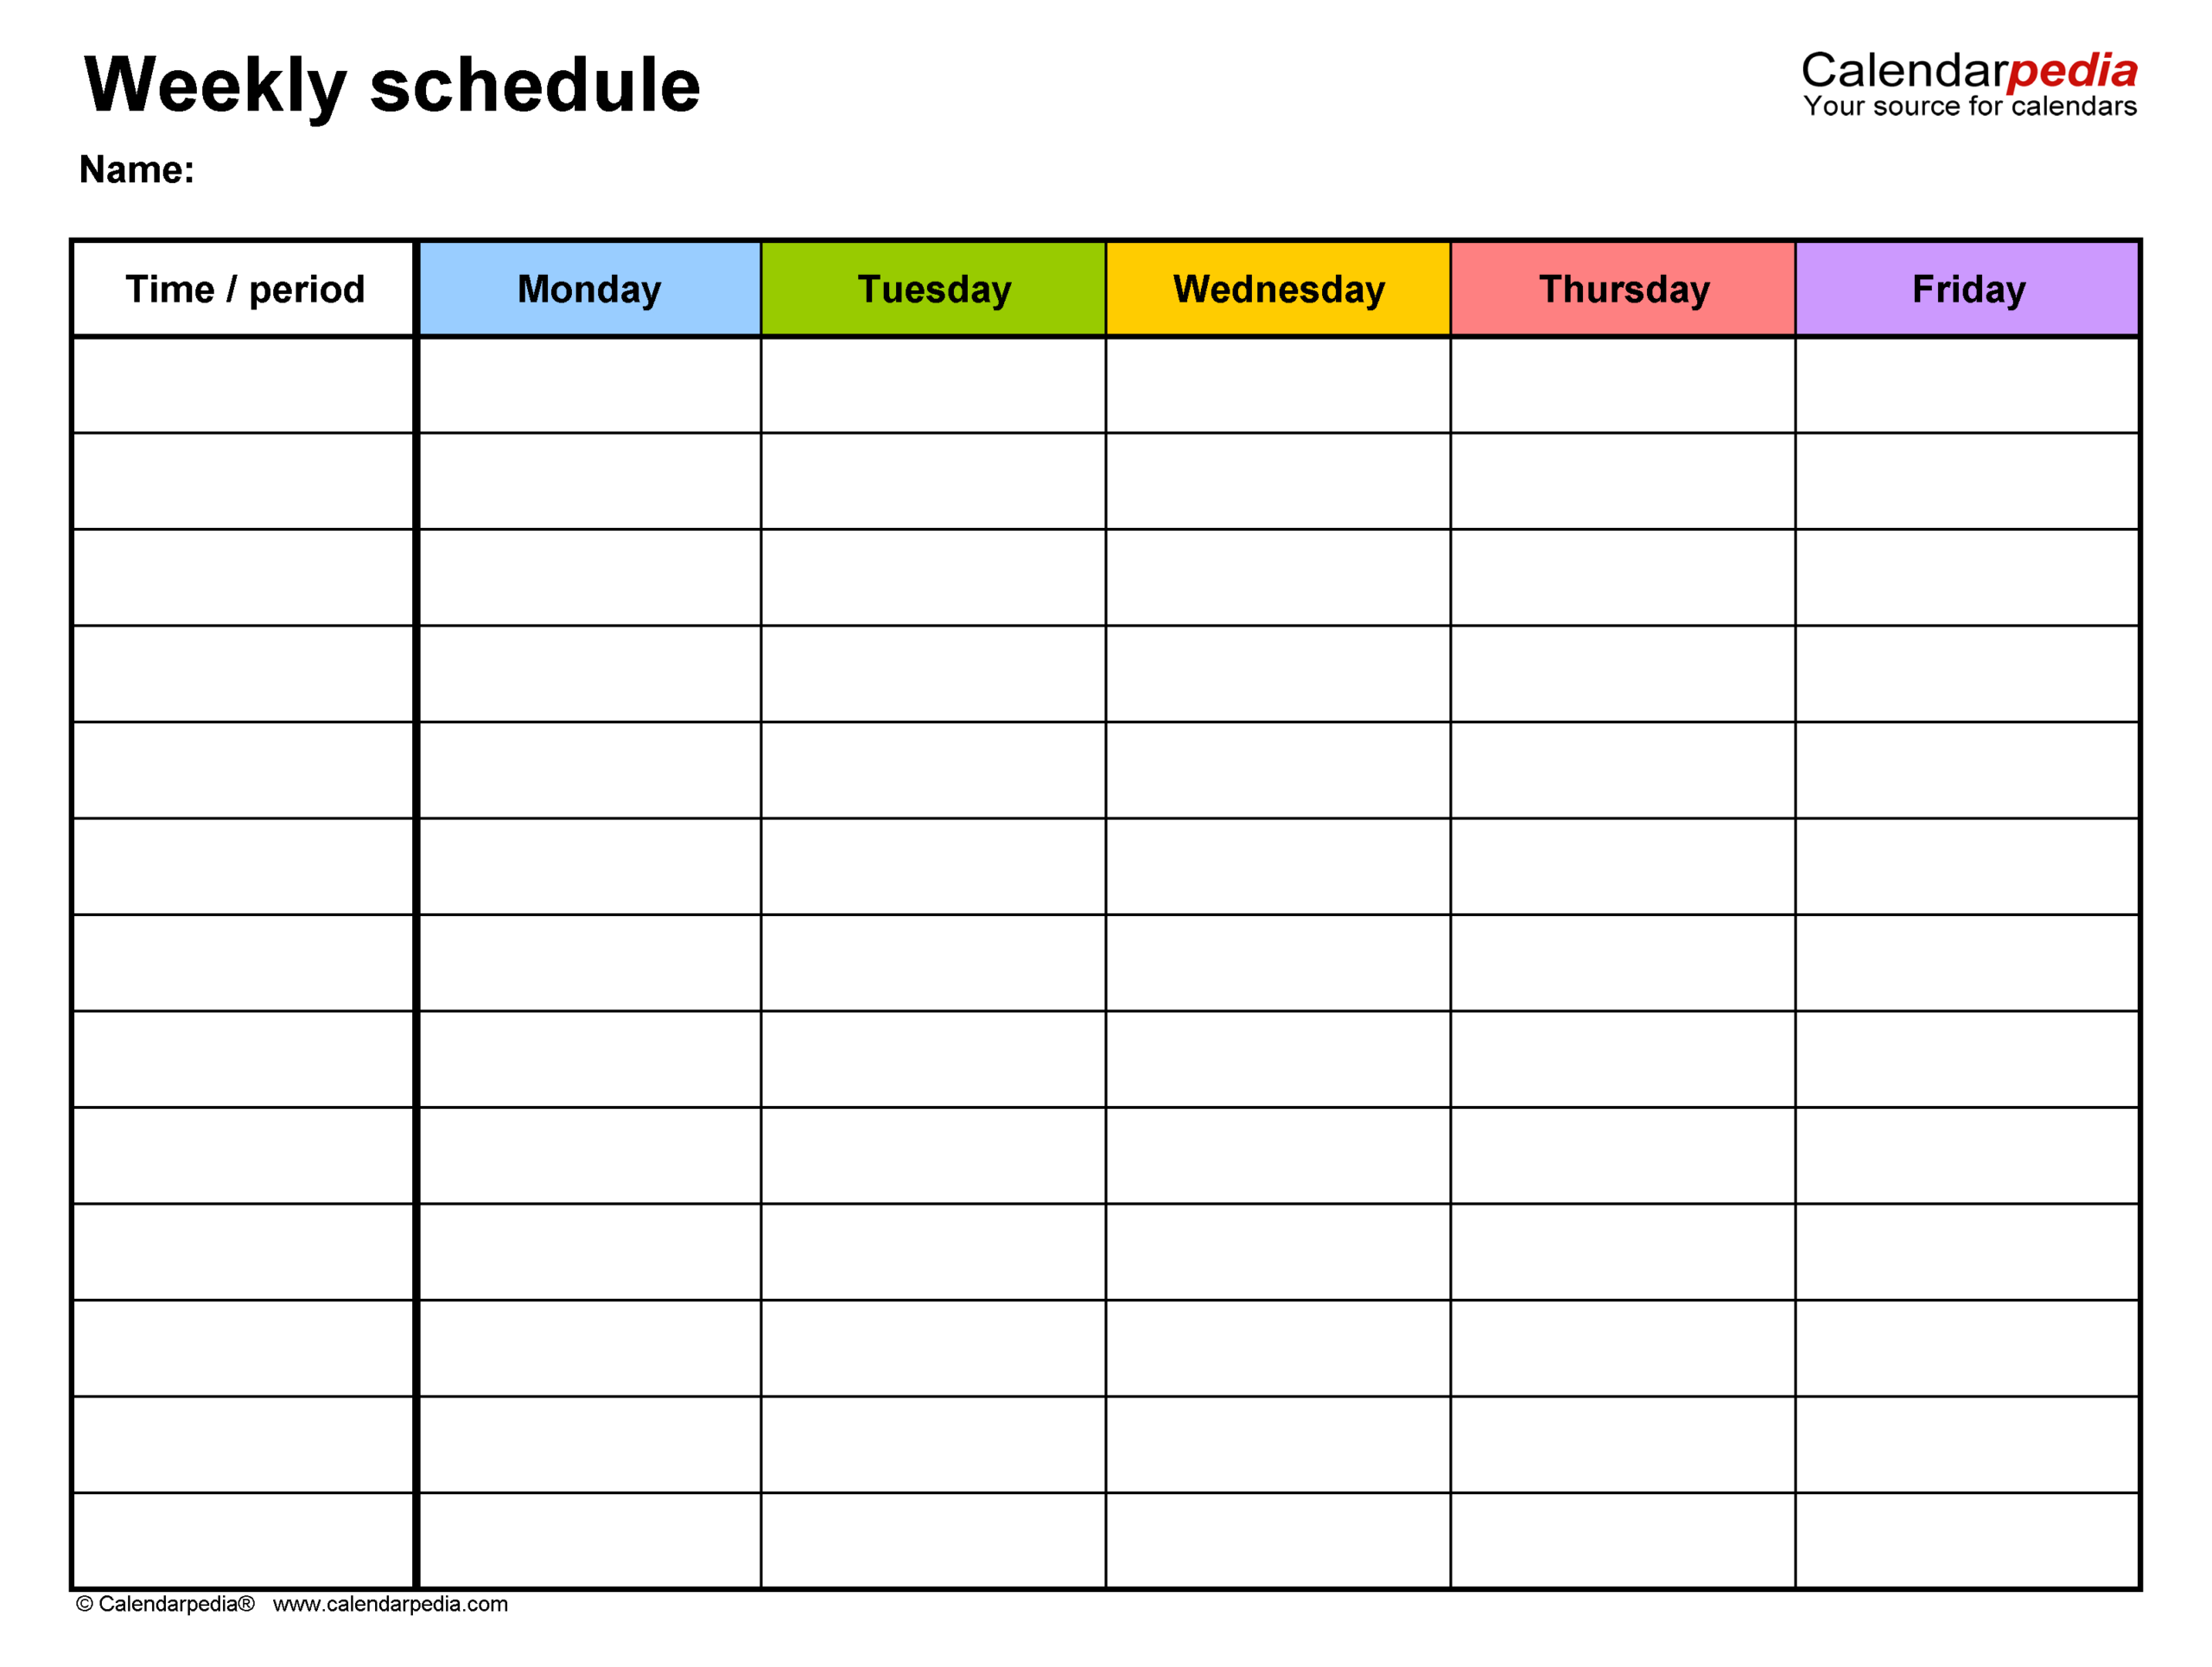 Free Weekly Schedules For Excel - 18 Templates